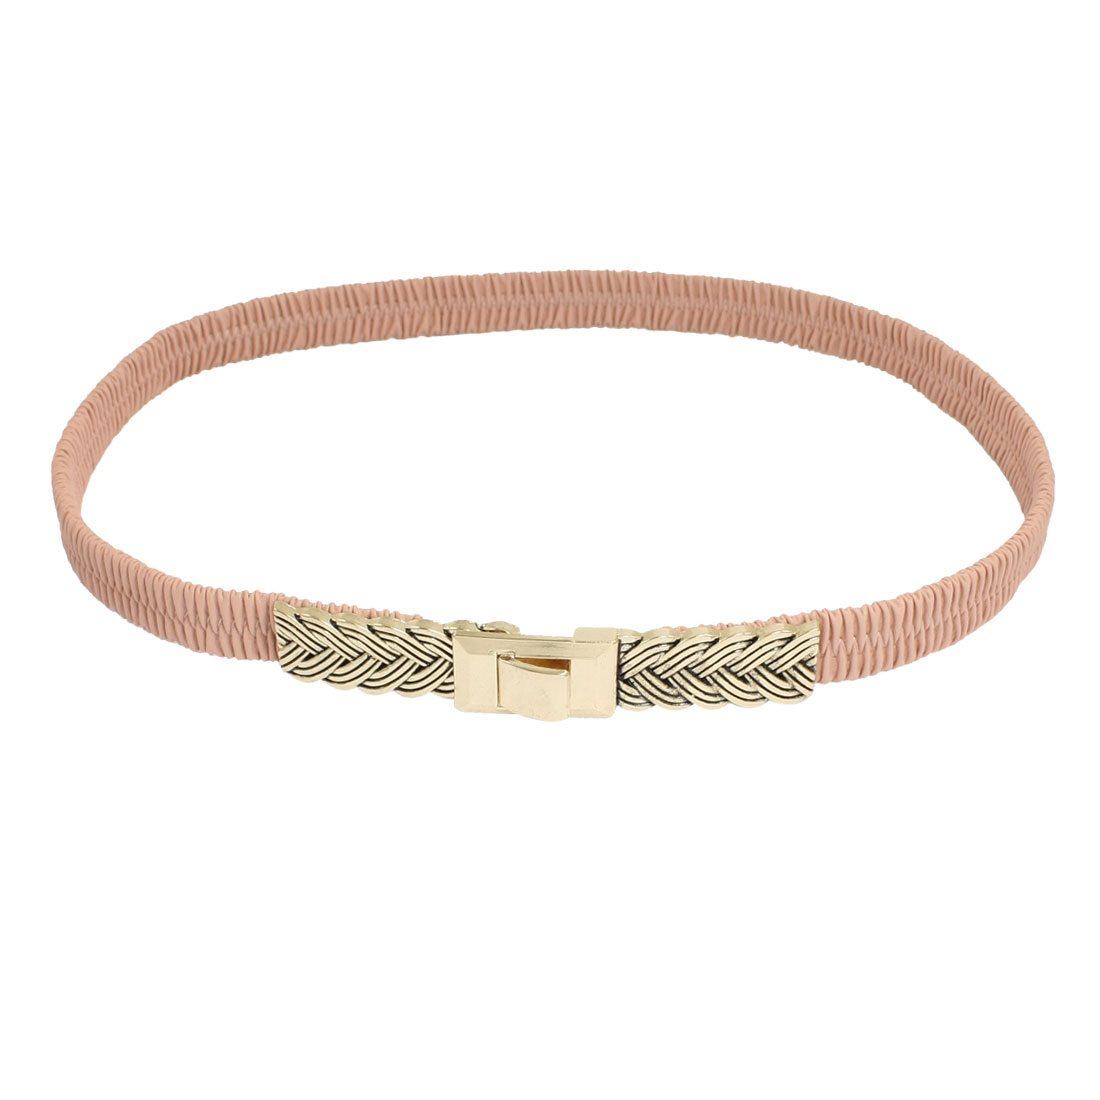 Lady Interlocking Buckle Faux Leather Elastic Band Cinch Belt Pale Pink